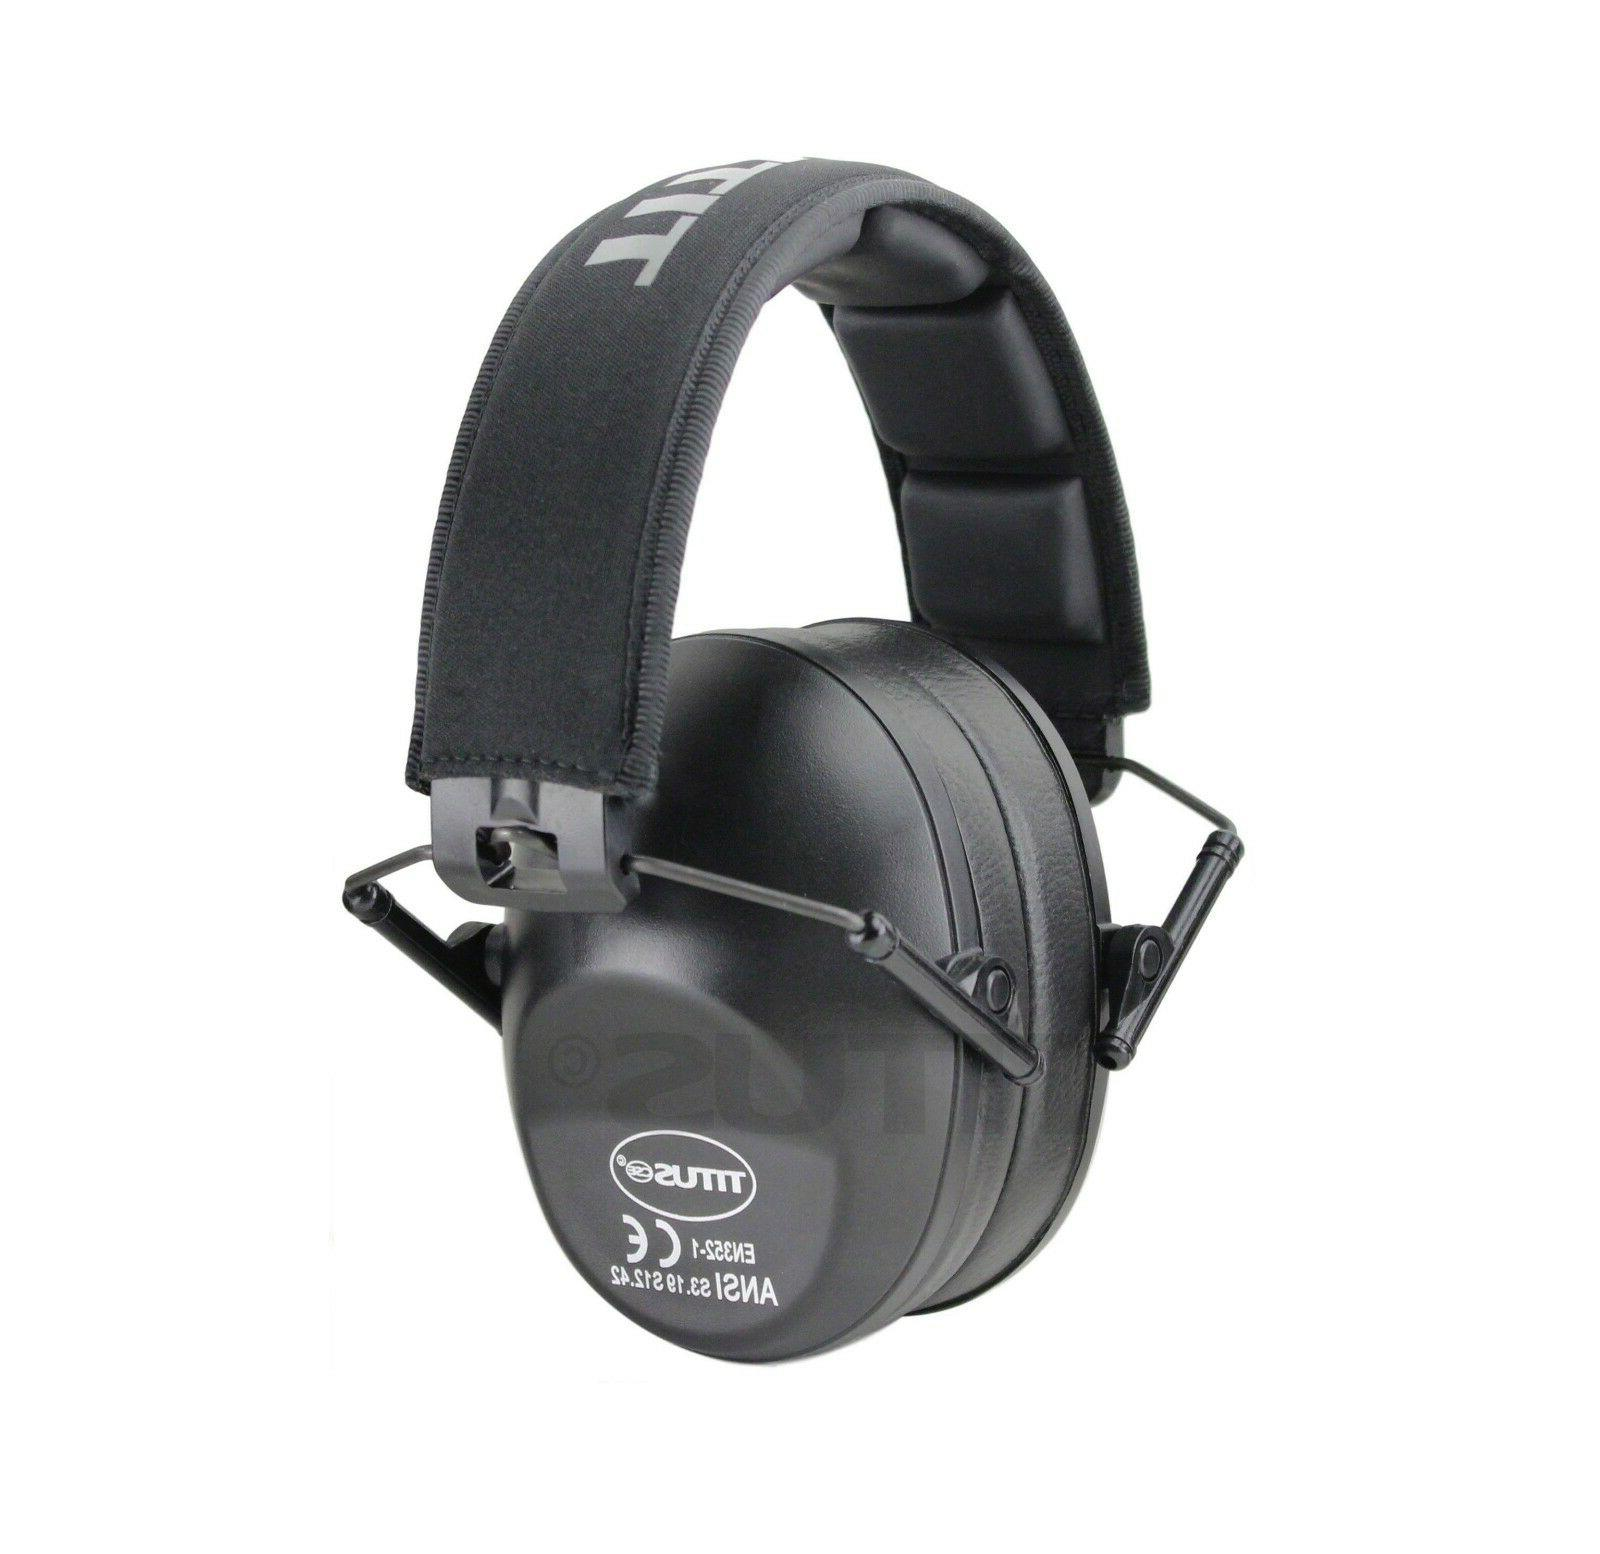 Low Profile Black Ear Muffs Hearing Noise Reduction Protecti